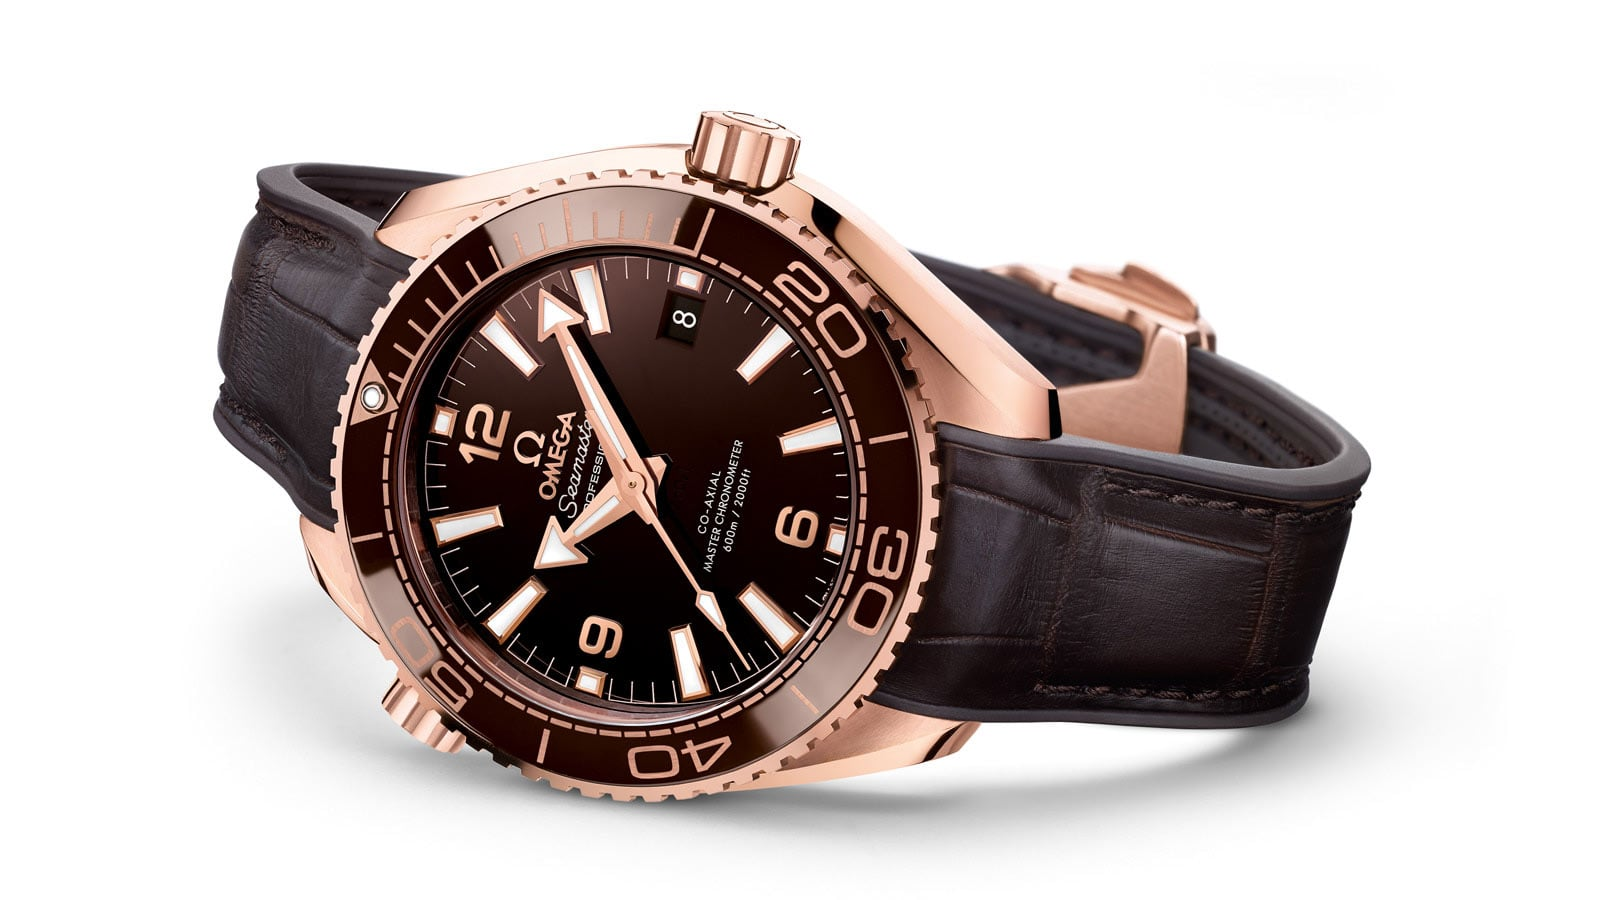 THE SEAMASTER PLANET OCEAN LADIES' SELECTION